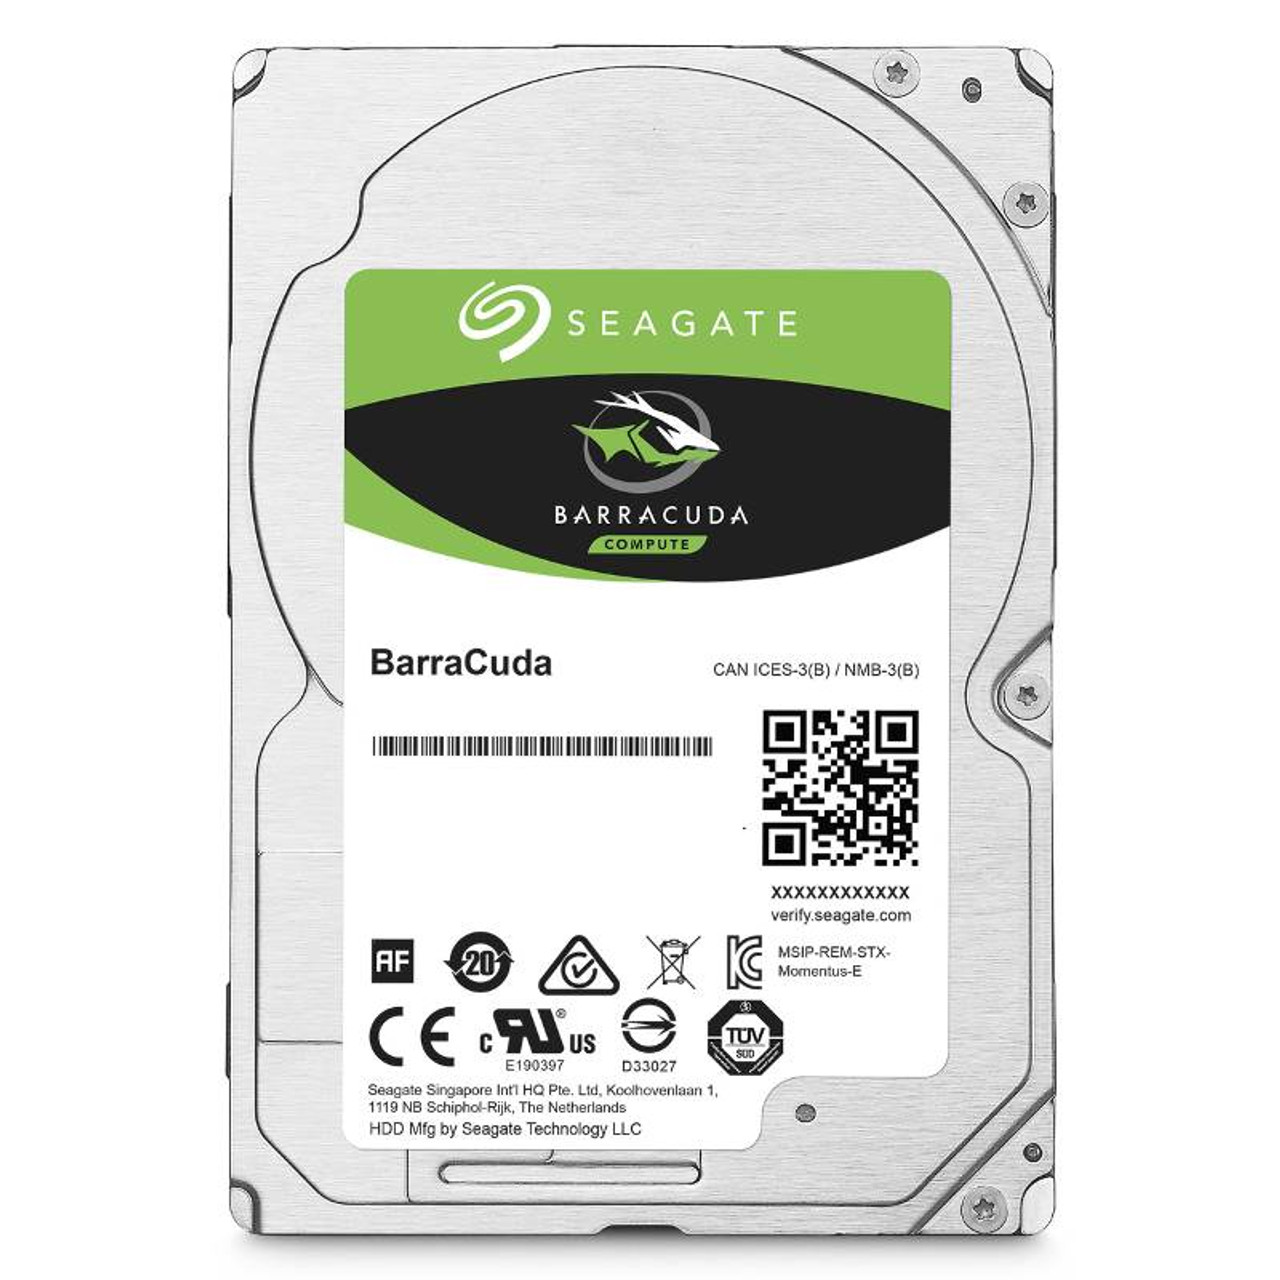 Image for Seagate ST4000LM024 4TB BarraCuda 2.5in 15mm SATA3 5400RPM Laptop Hard Drive CX Computer Superstore